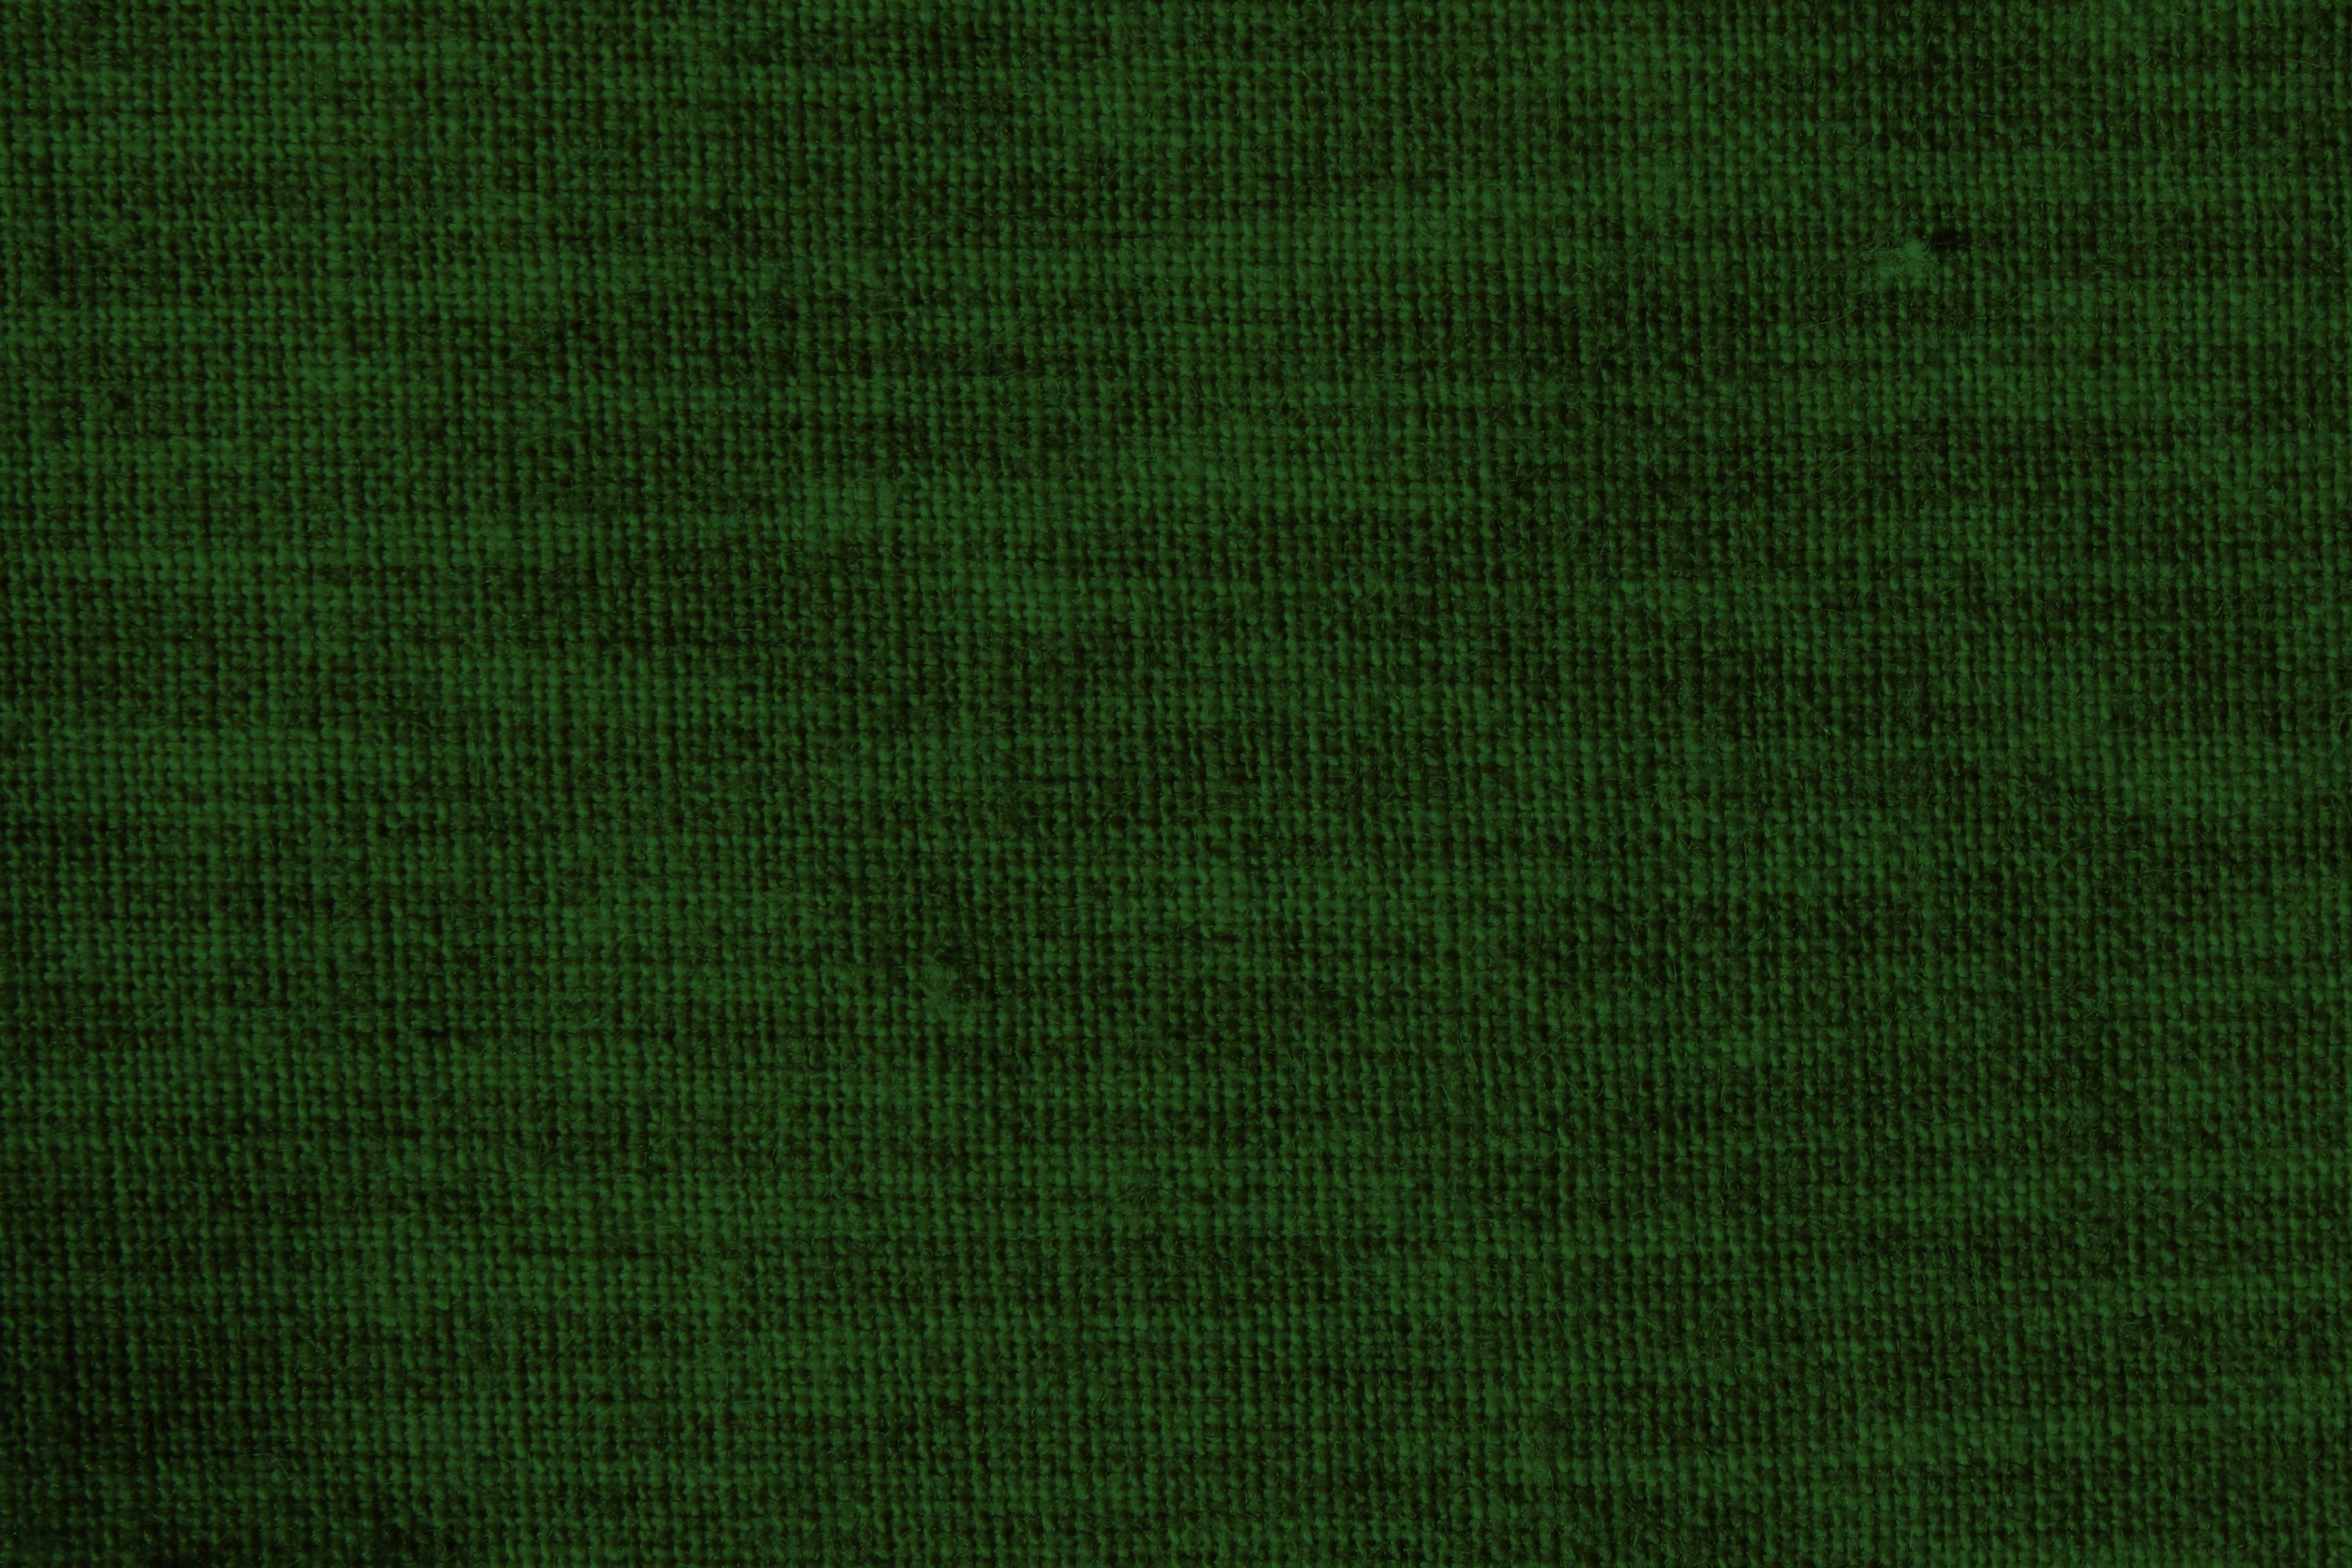 Forest Green Woven Fabric Close Up Texture Picture Free